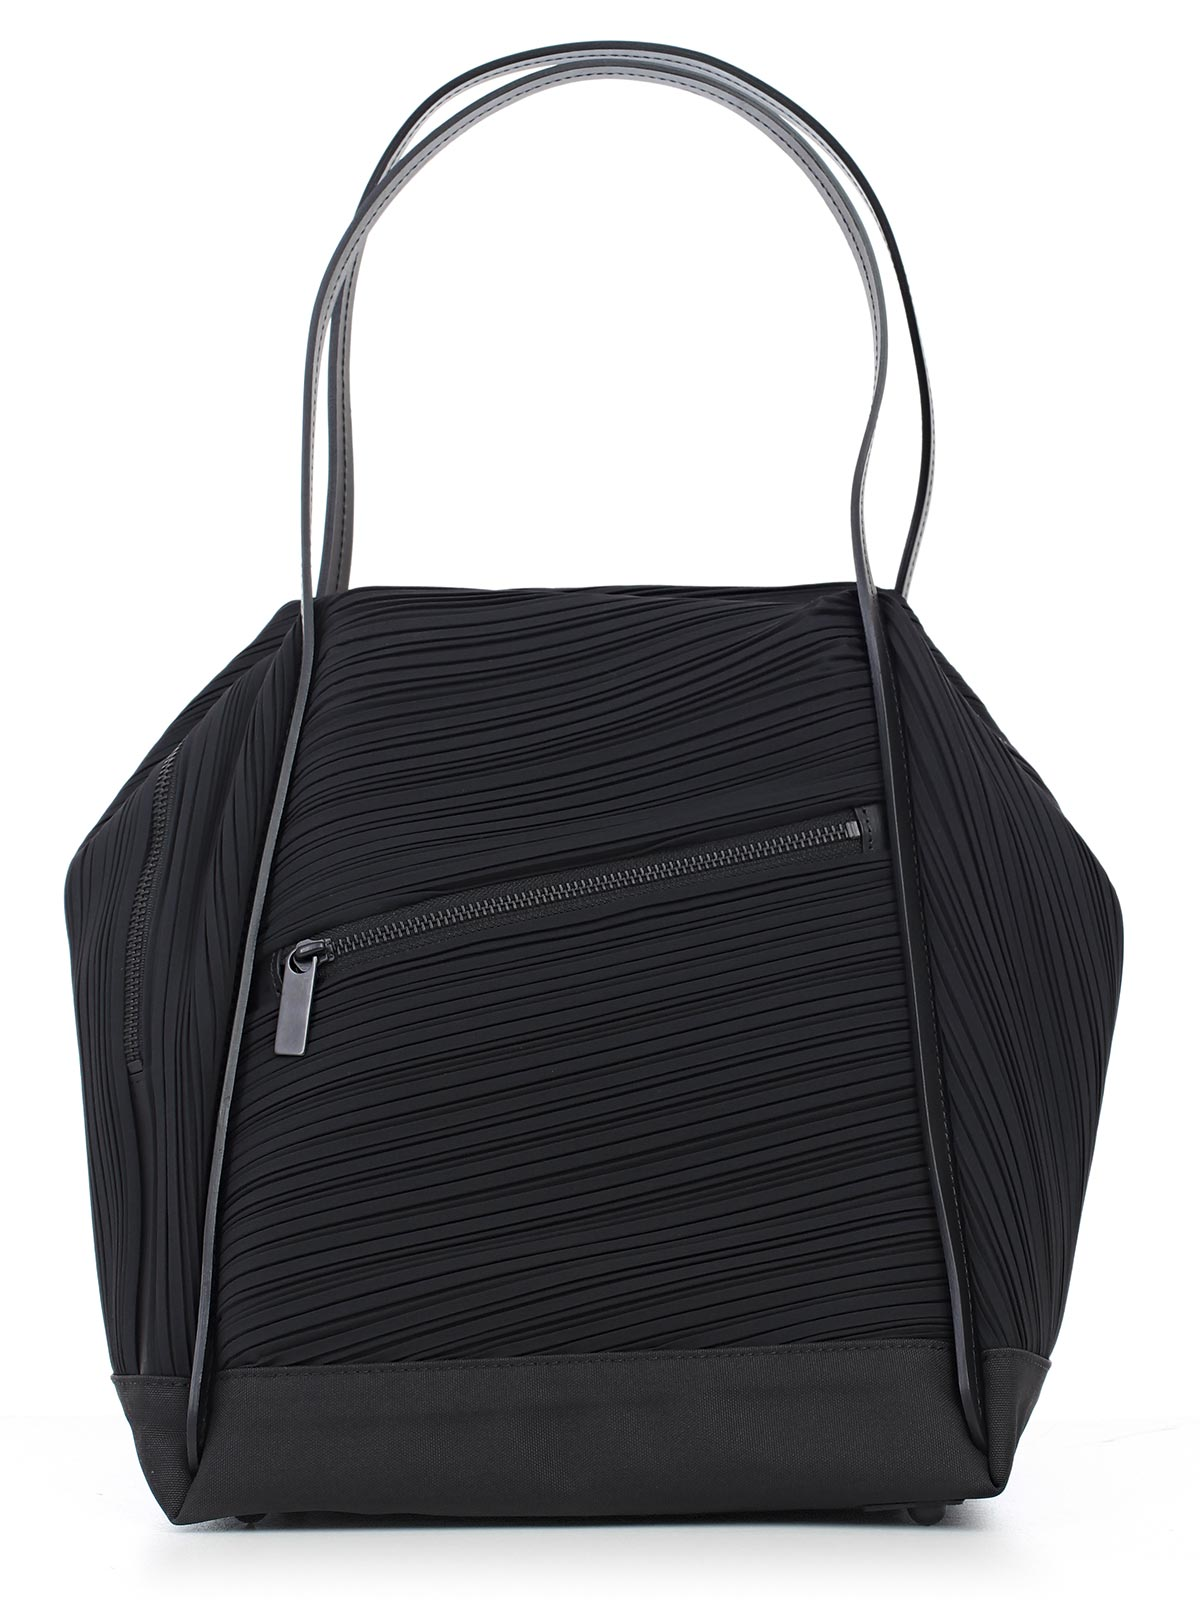 Picture of PLEATS PLEASE BY ISSEY MIYAKE Totes